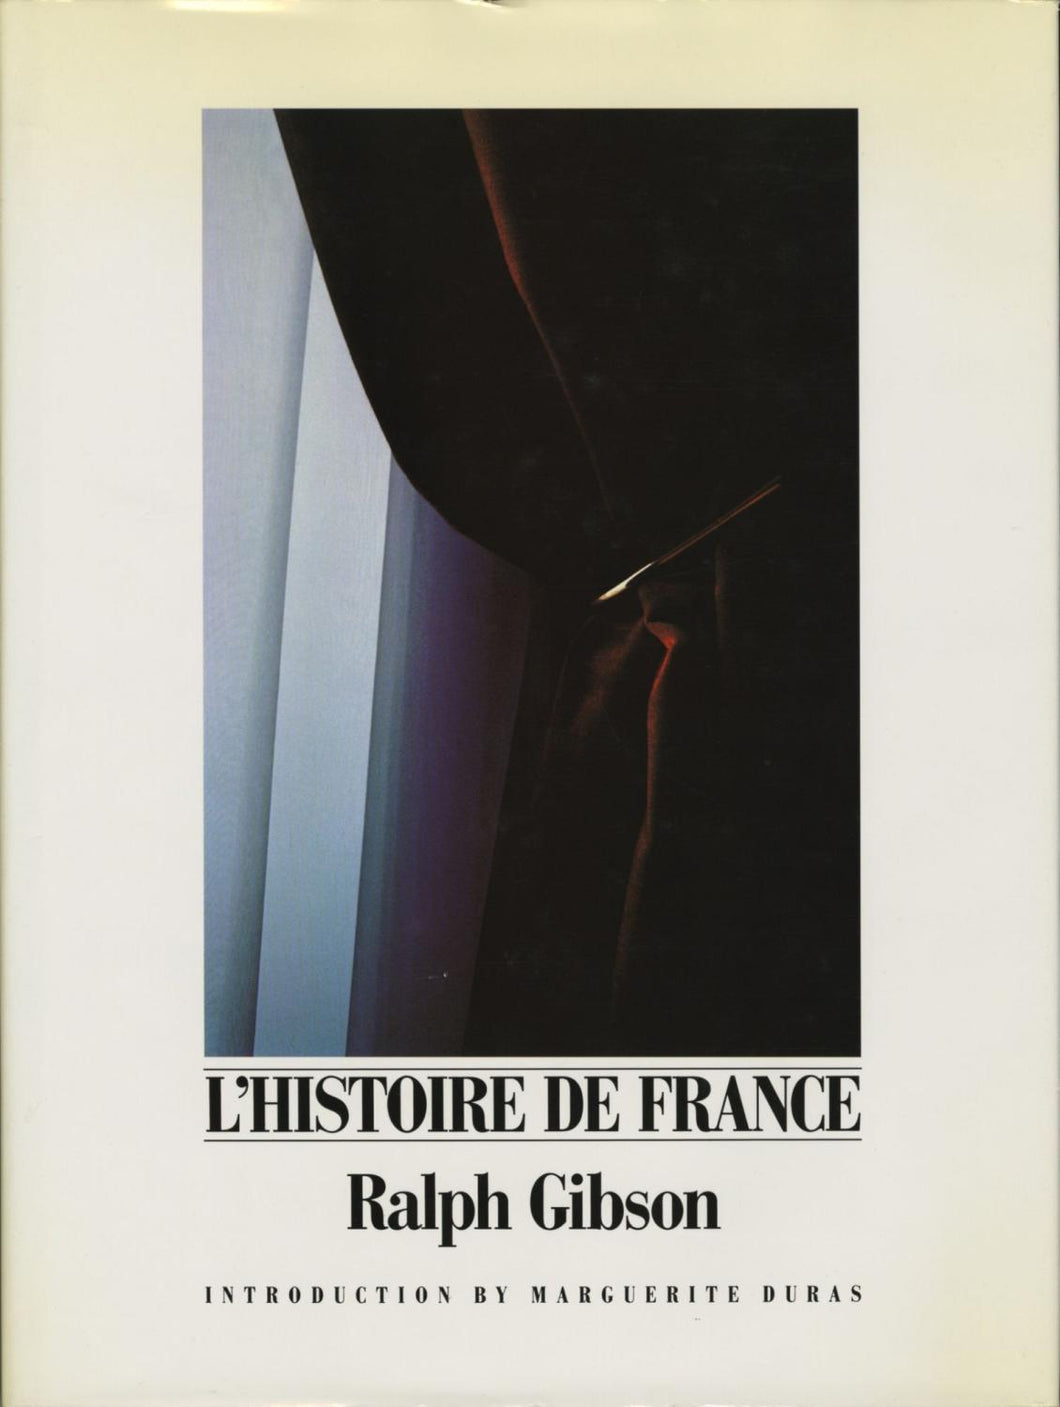 L'Histoire De France by Ralph Gibson